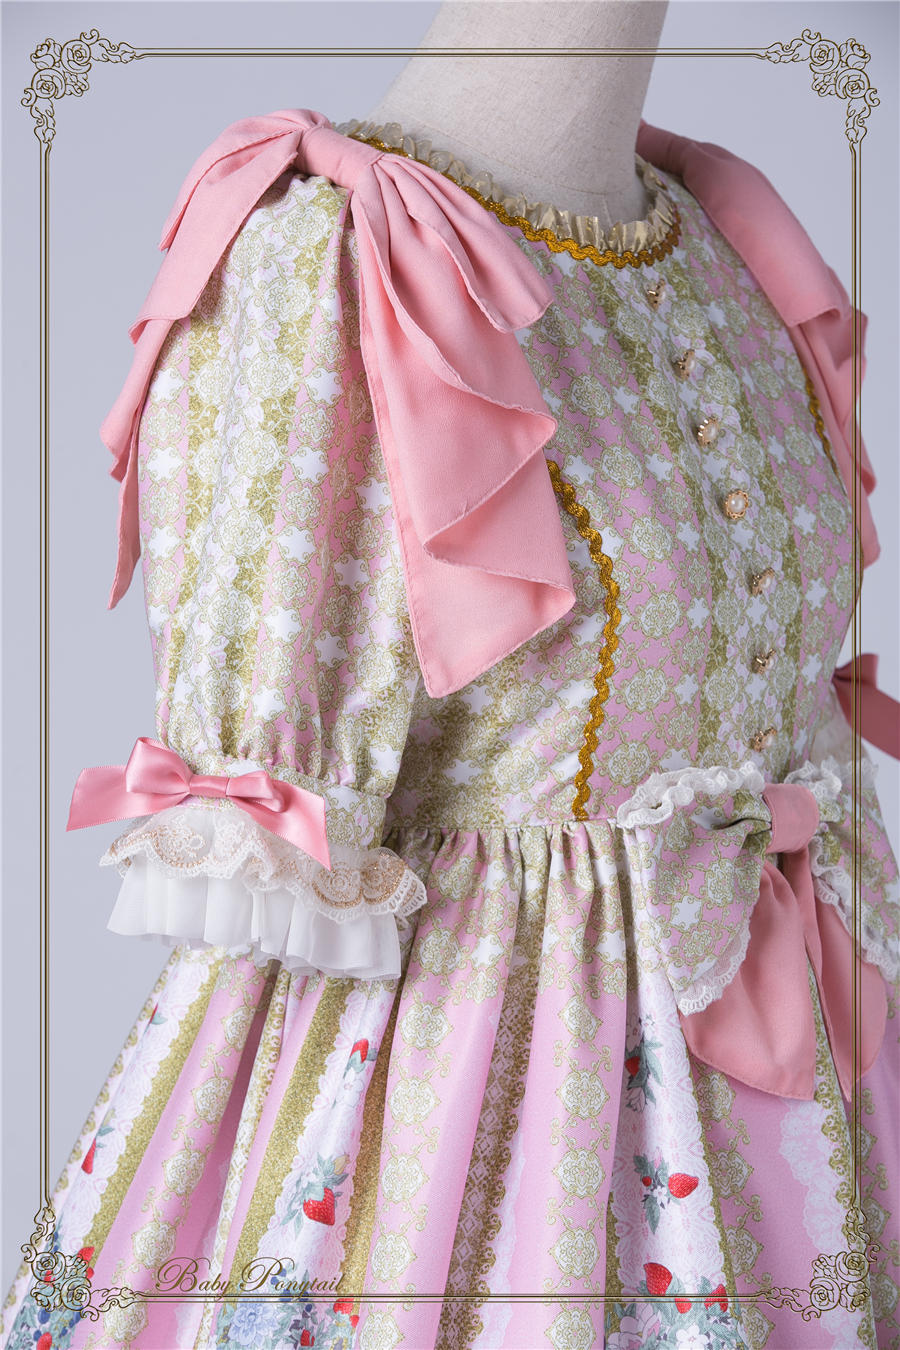 Baby Ponytail_Stock Photo_Rococo Bouquet_OP Pink_5.jpg